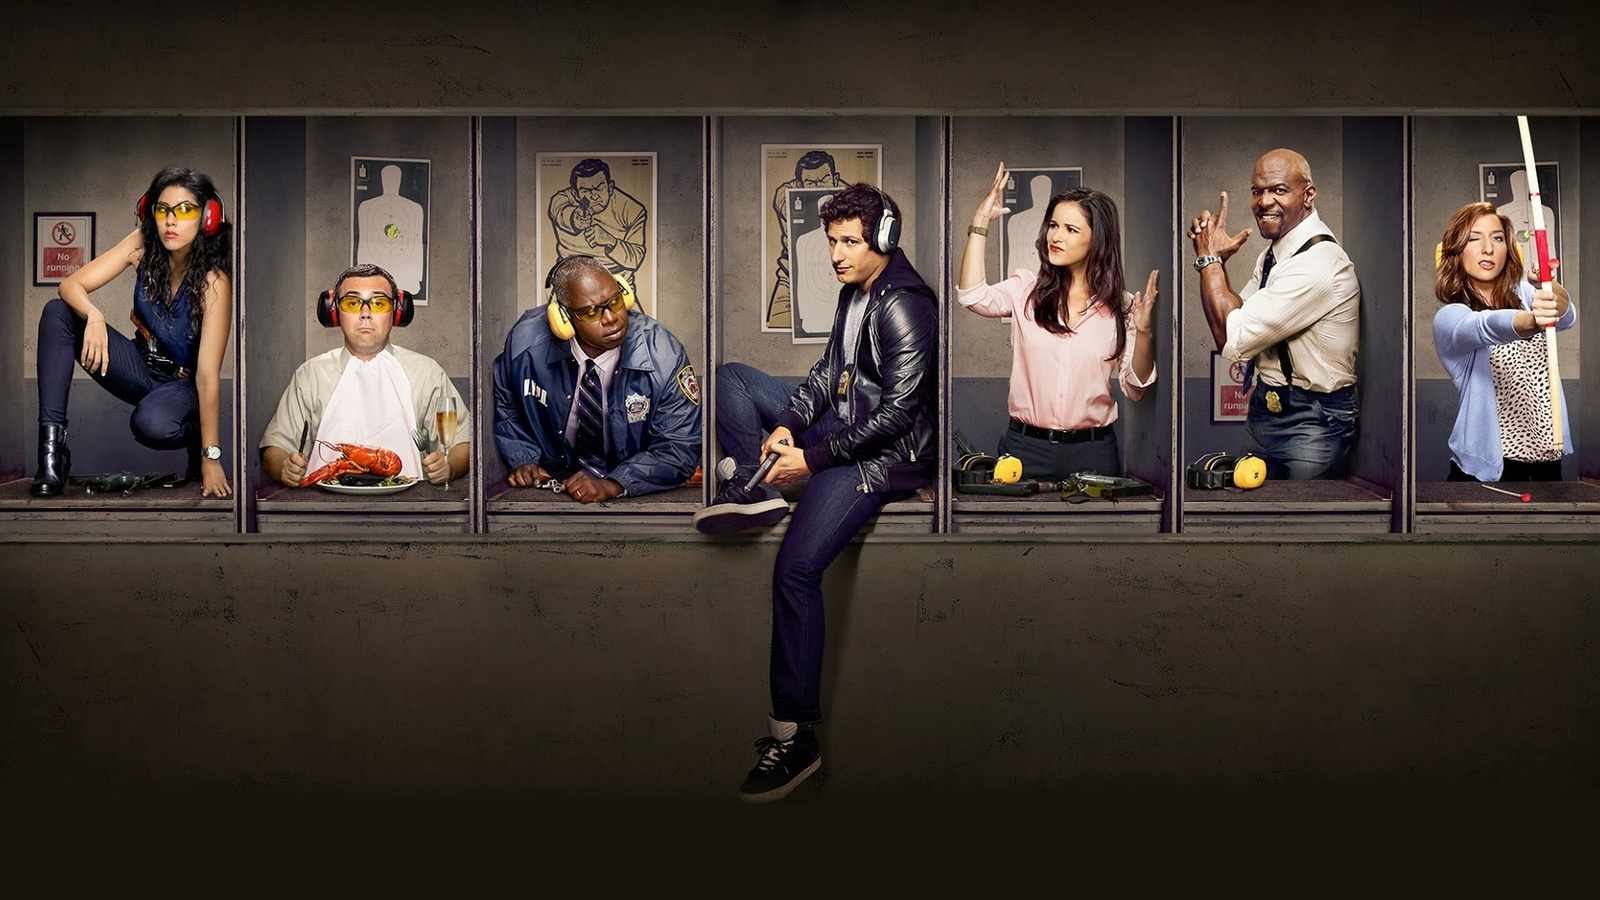 Бруклин 9-9 / Brooklyn Nine-Nine background